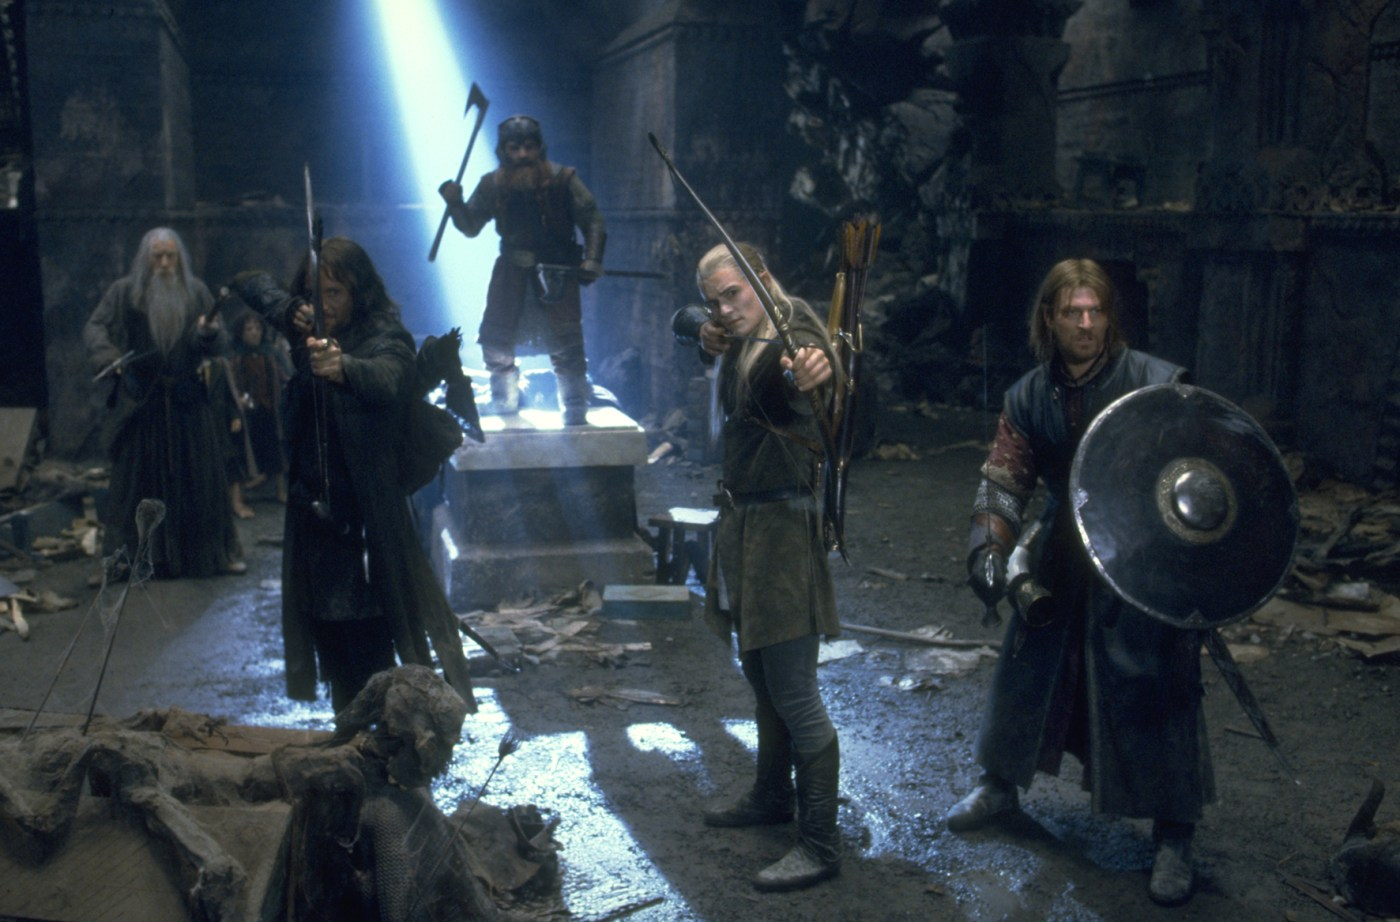 the-lord-of-the-rings-the-fellowship-of-the-ring-155355l